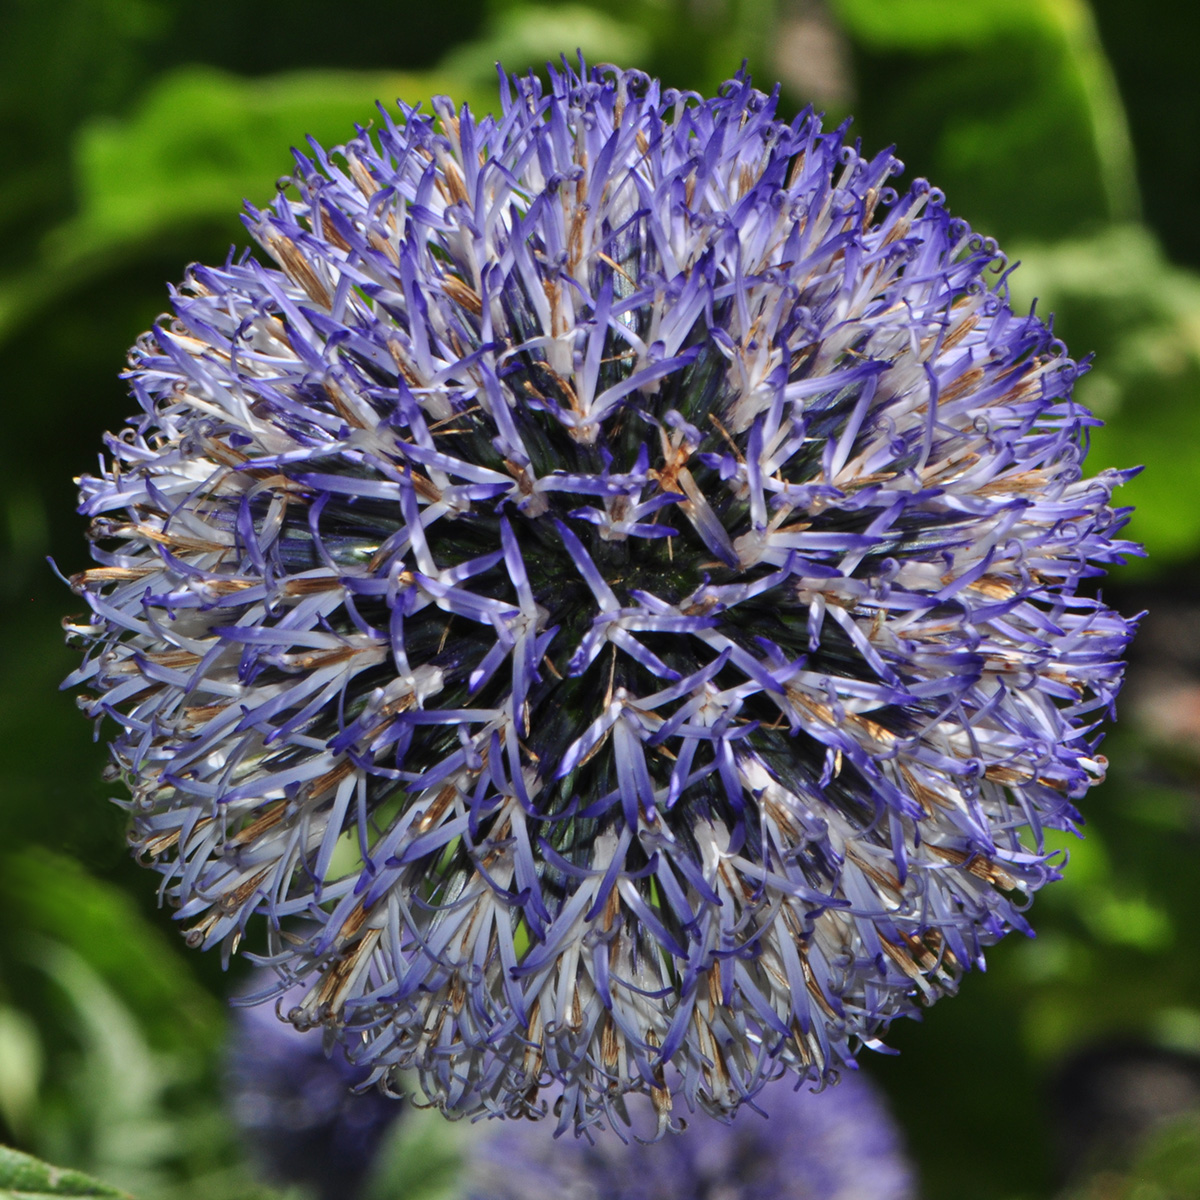 Visions from the Garden - Flower 2